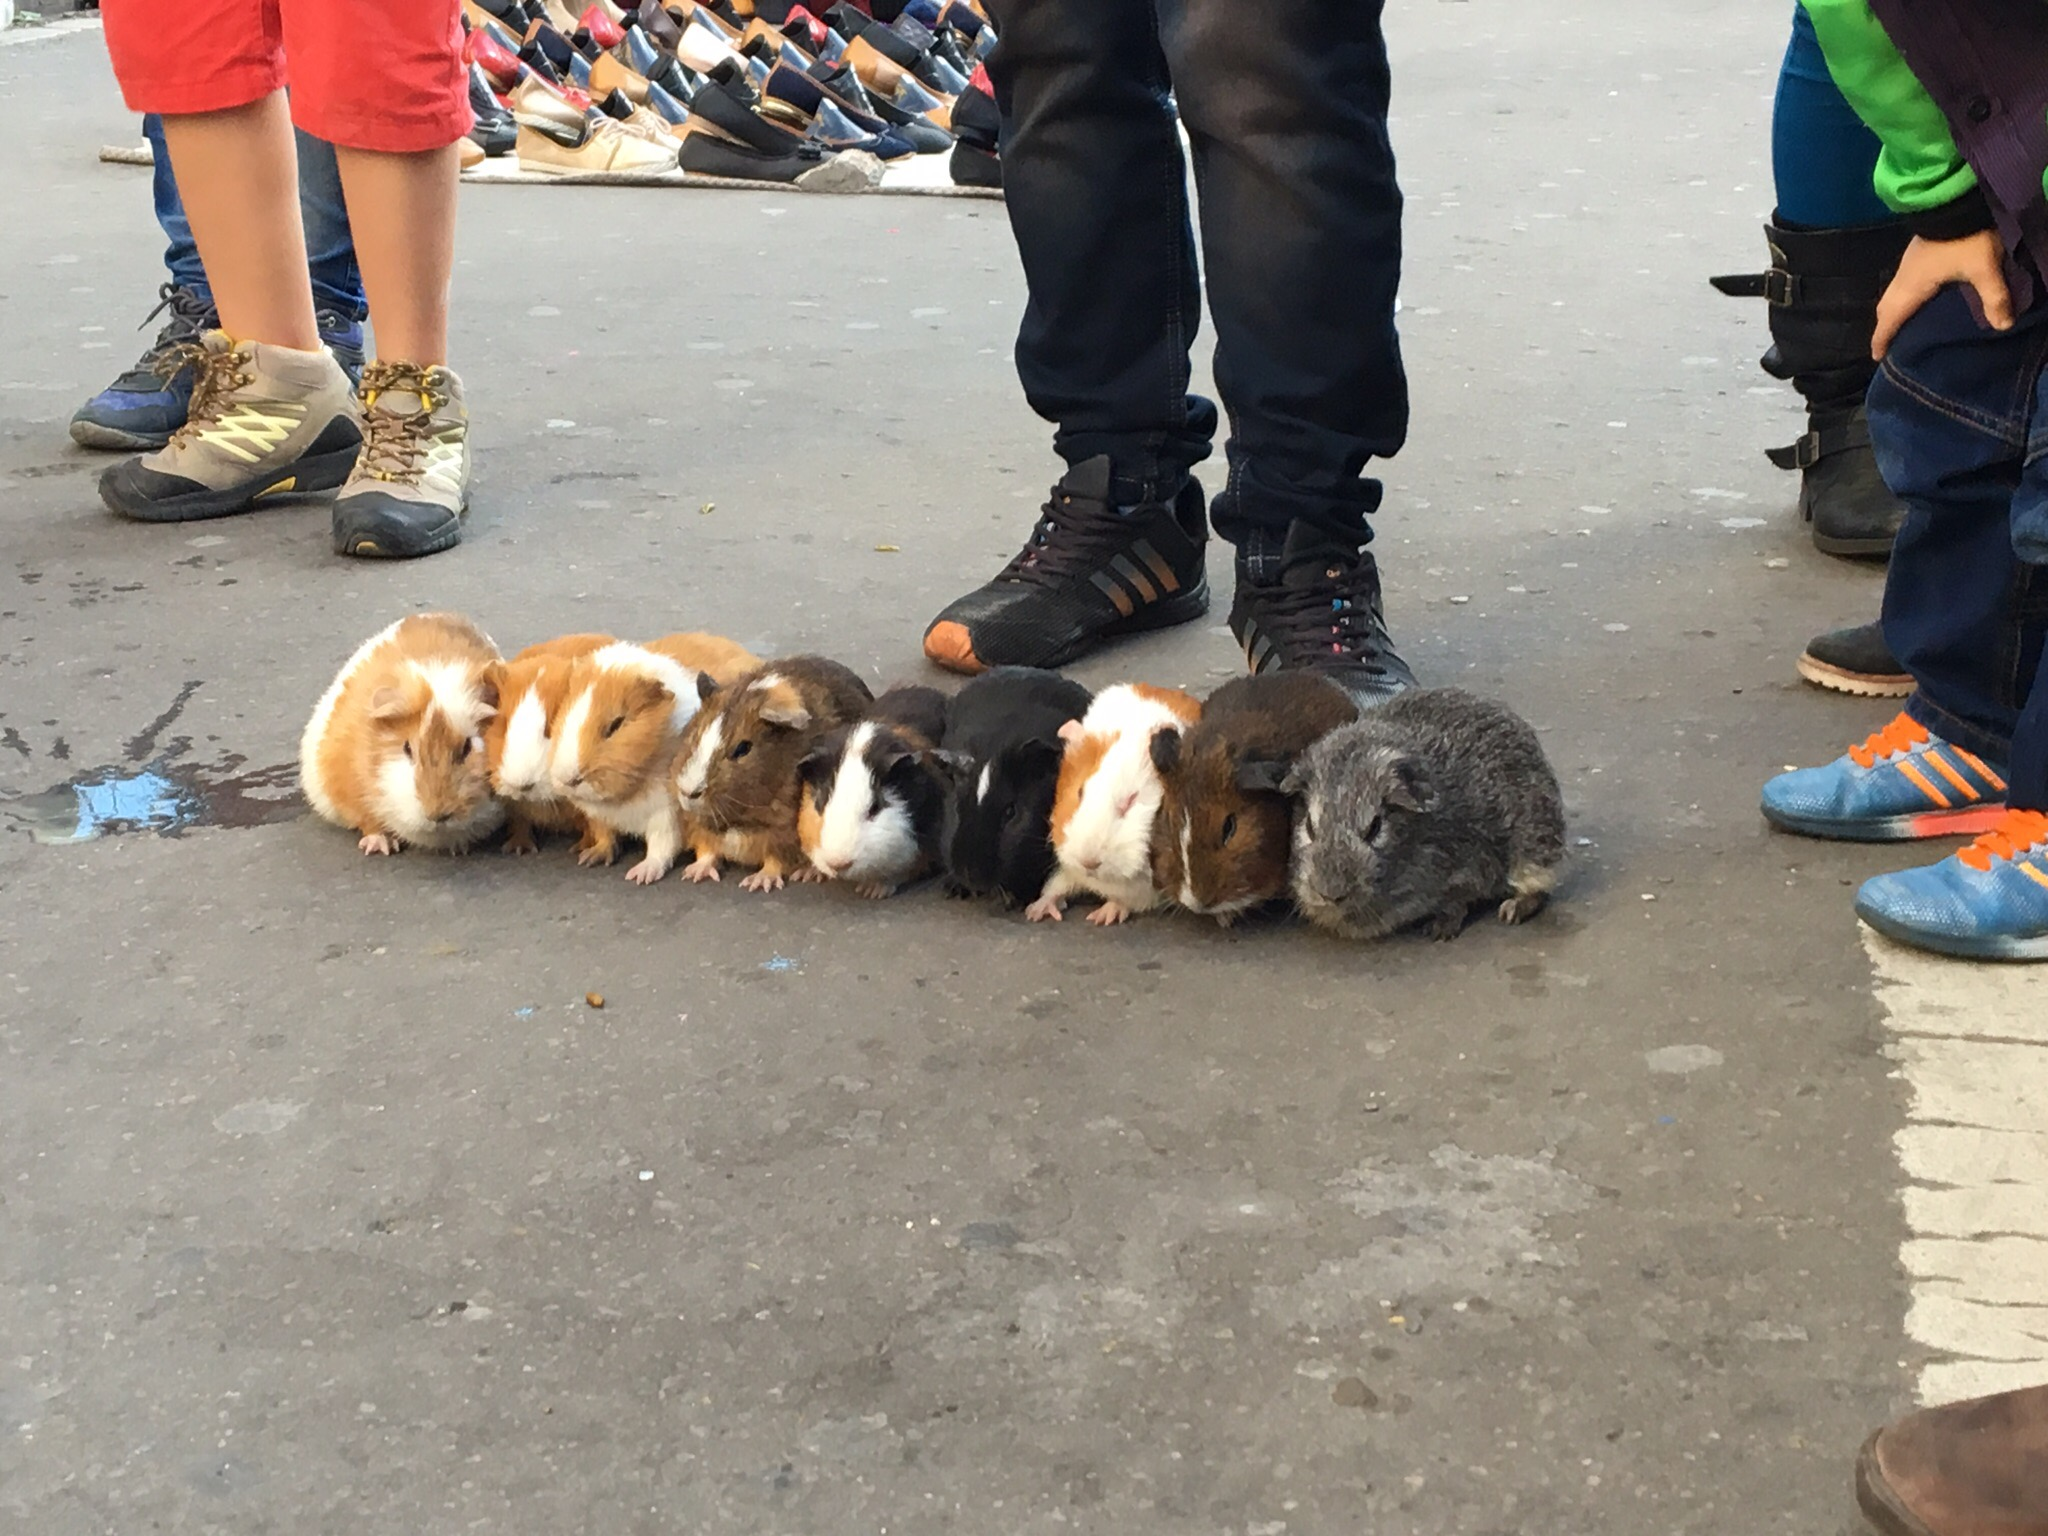 Guinea pig races are everywhere on the streets of Bogota! I regret never seeing one in action.